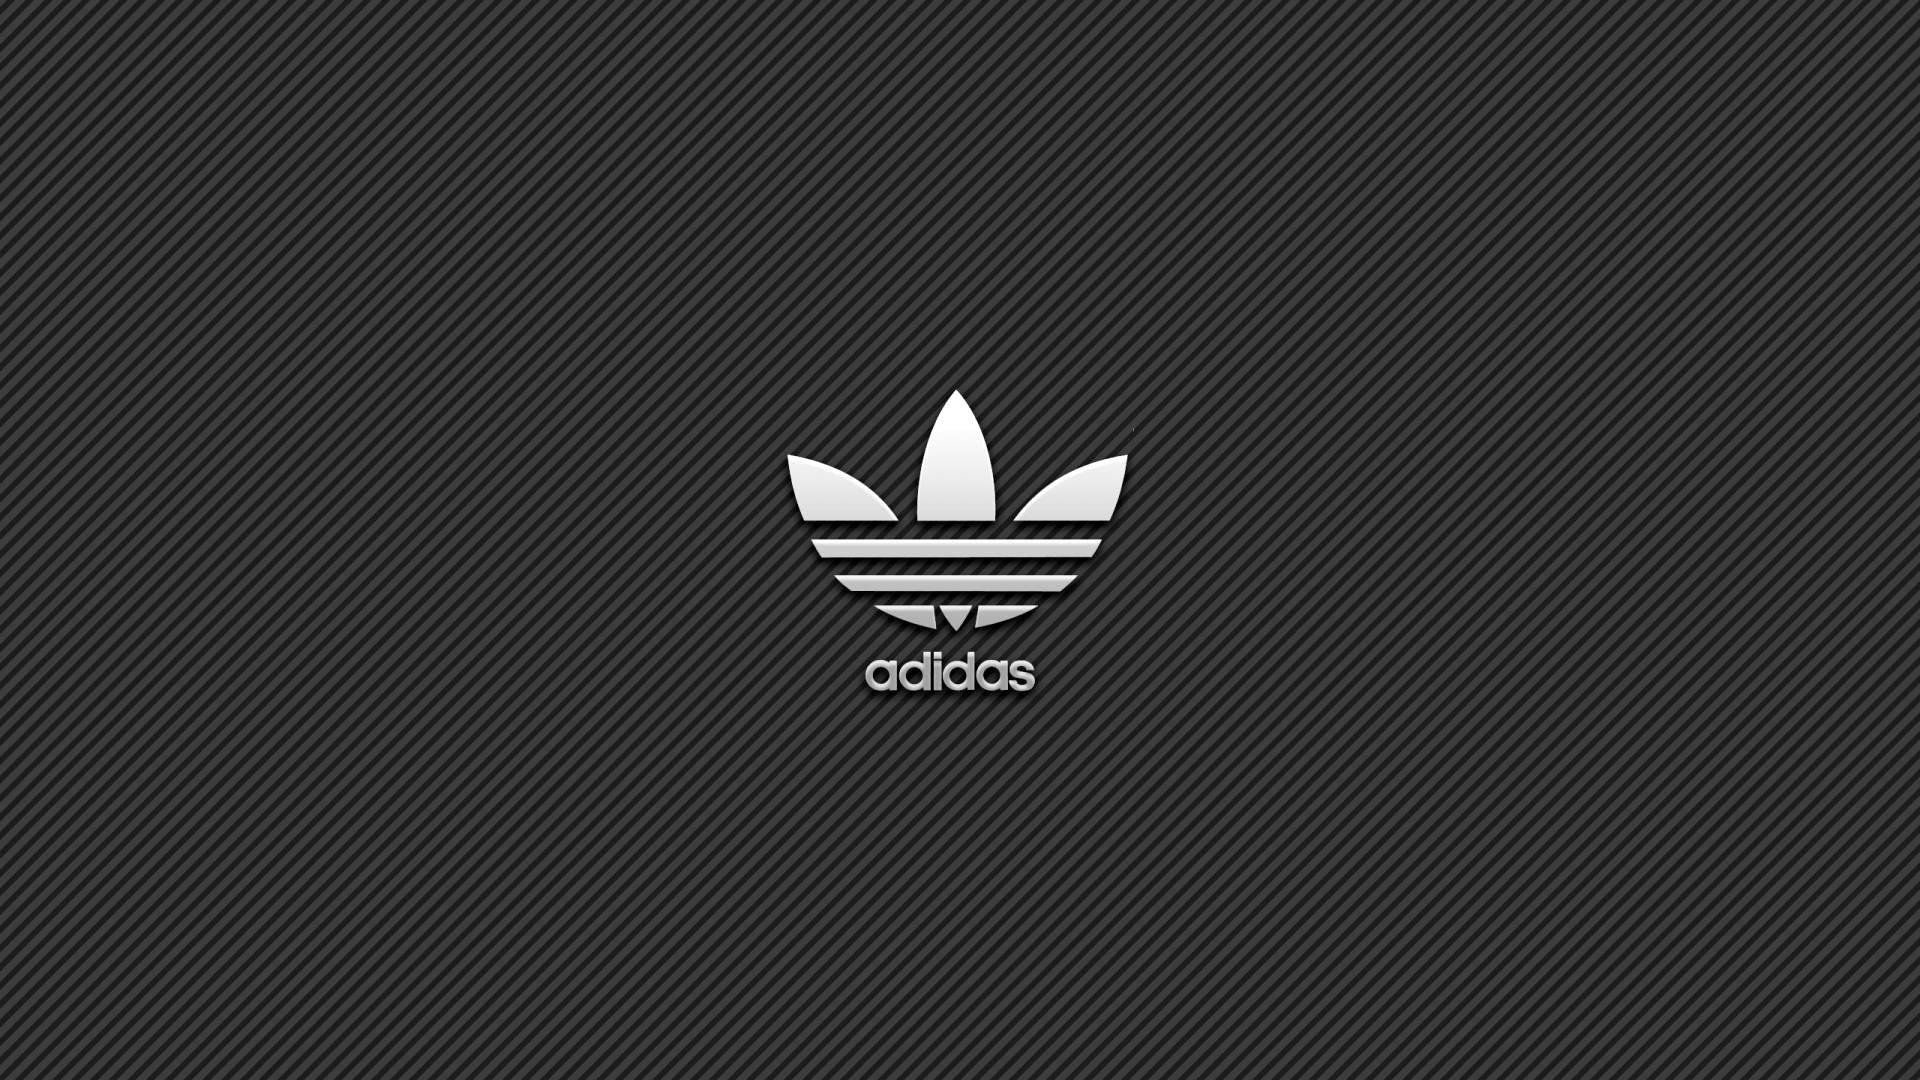 Res: 1920x1080, Adidas HD Wallpapers Backgrounds Wallpaper